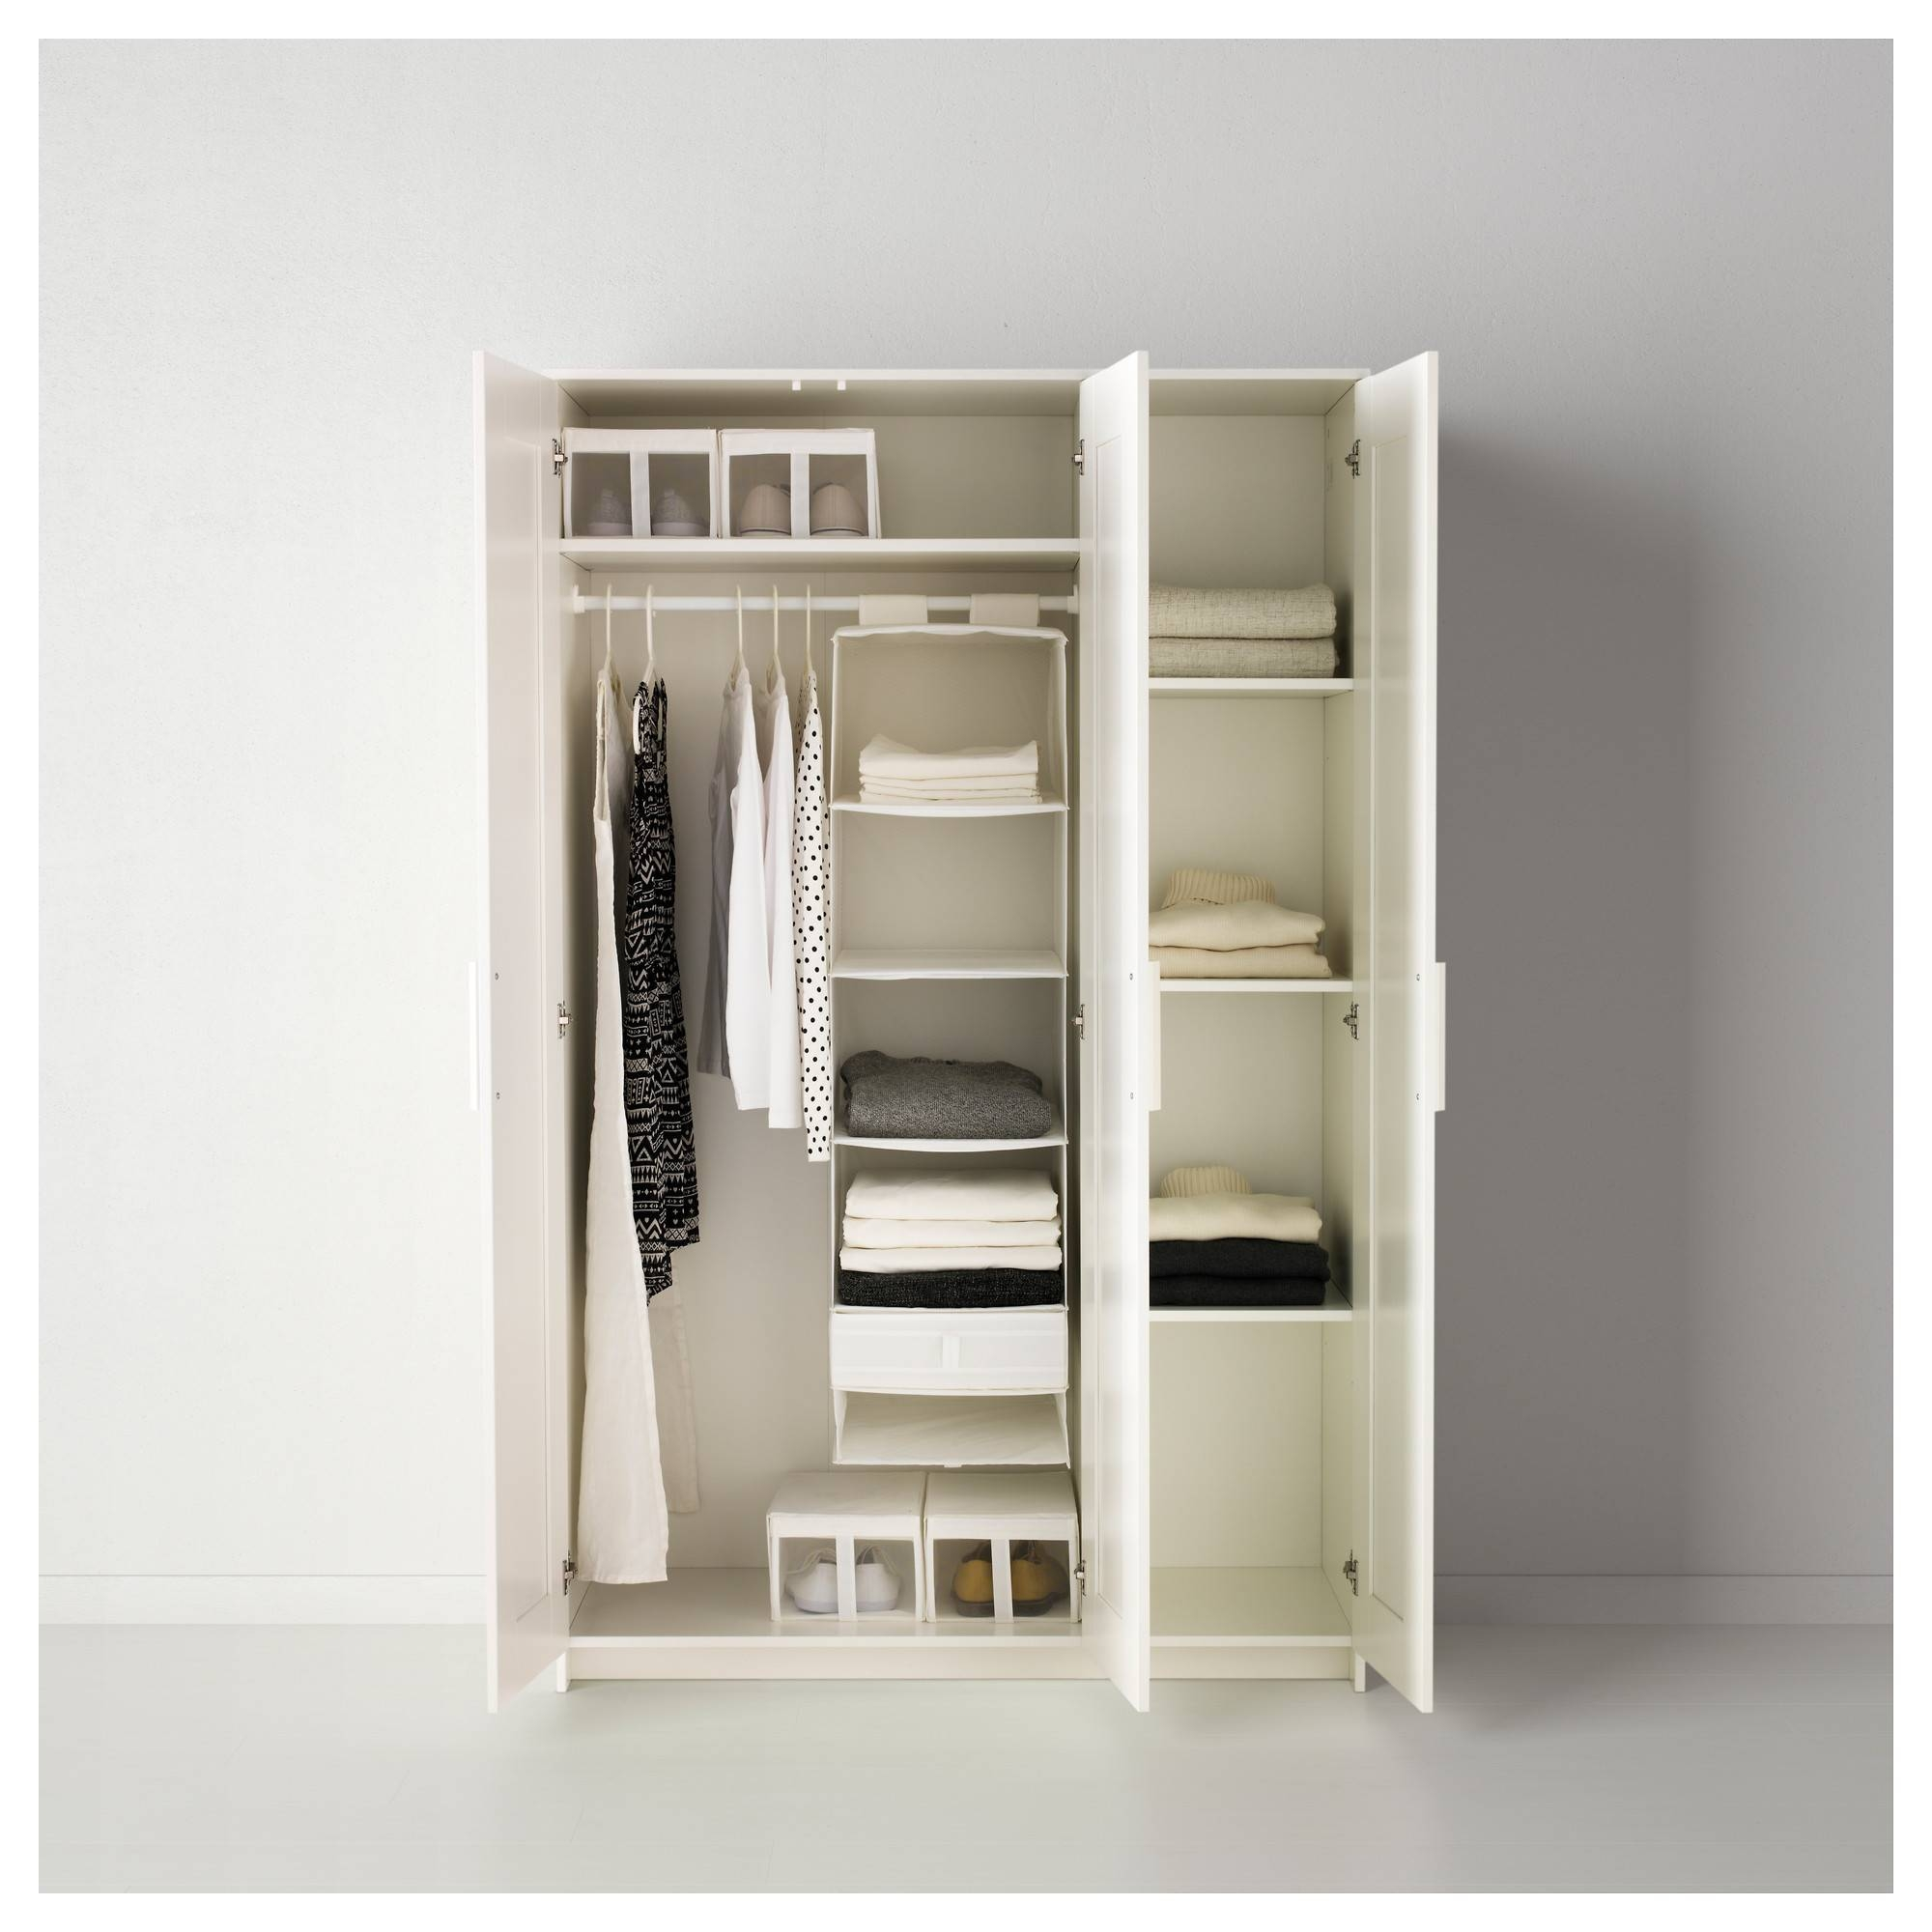 Brimnes Wardrobe With 3 Doors - White - Ikea within Wardrobe Drawers and Shelves Ikea (Image 9 of 30)